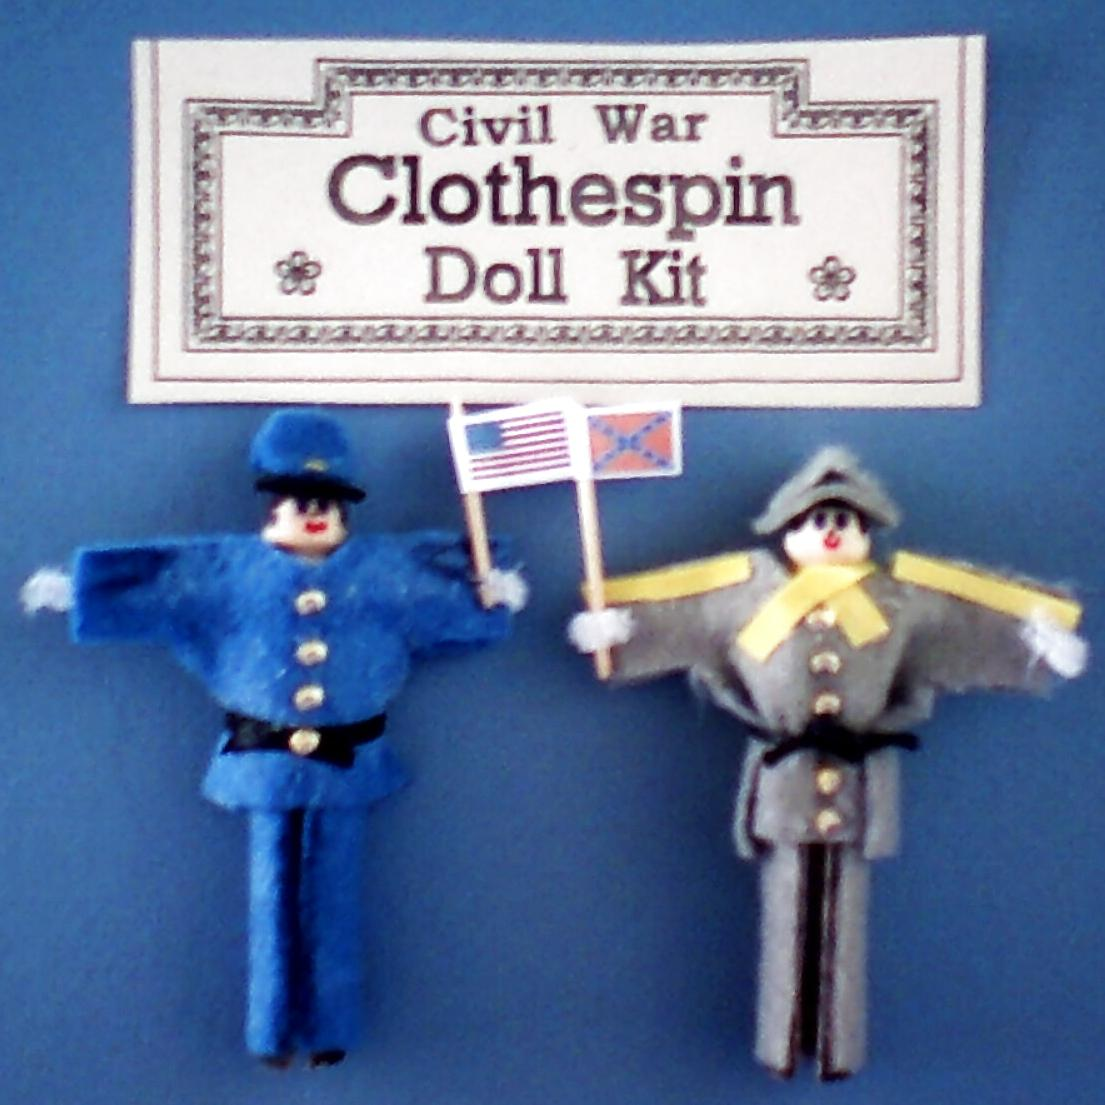 Civil war clothespin dolls